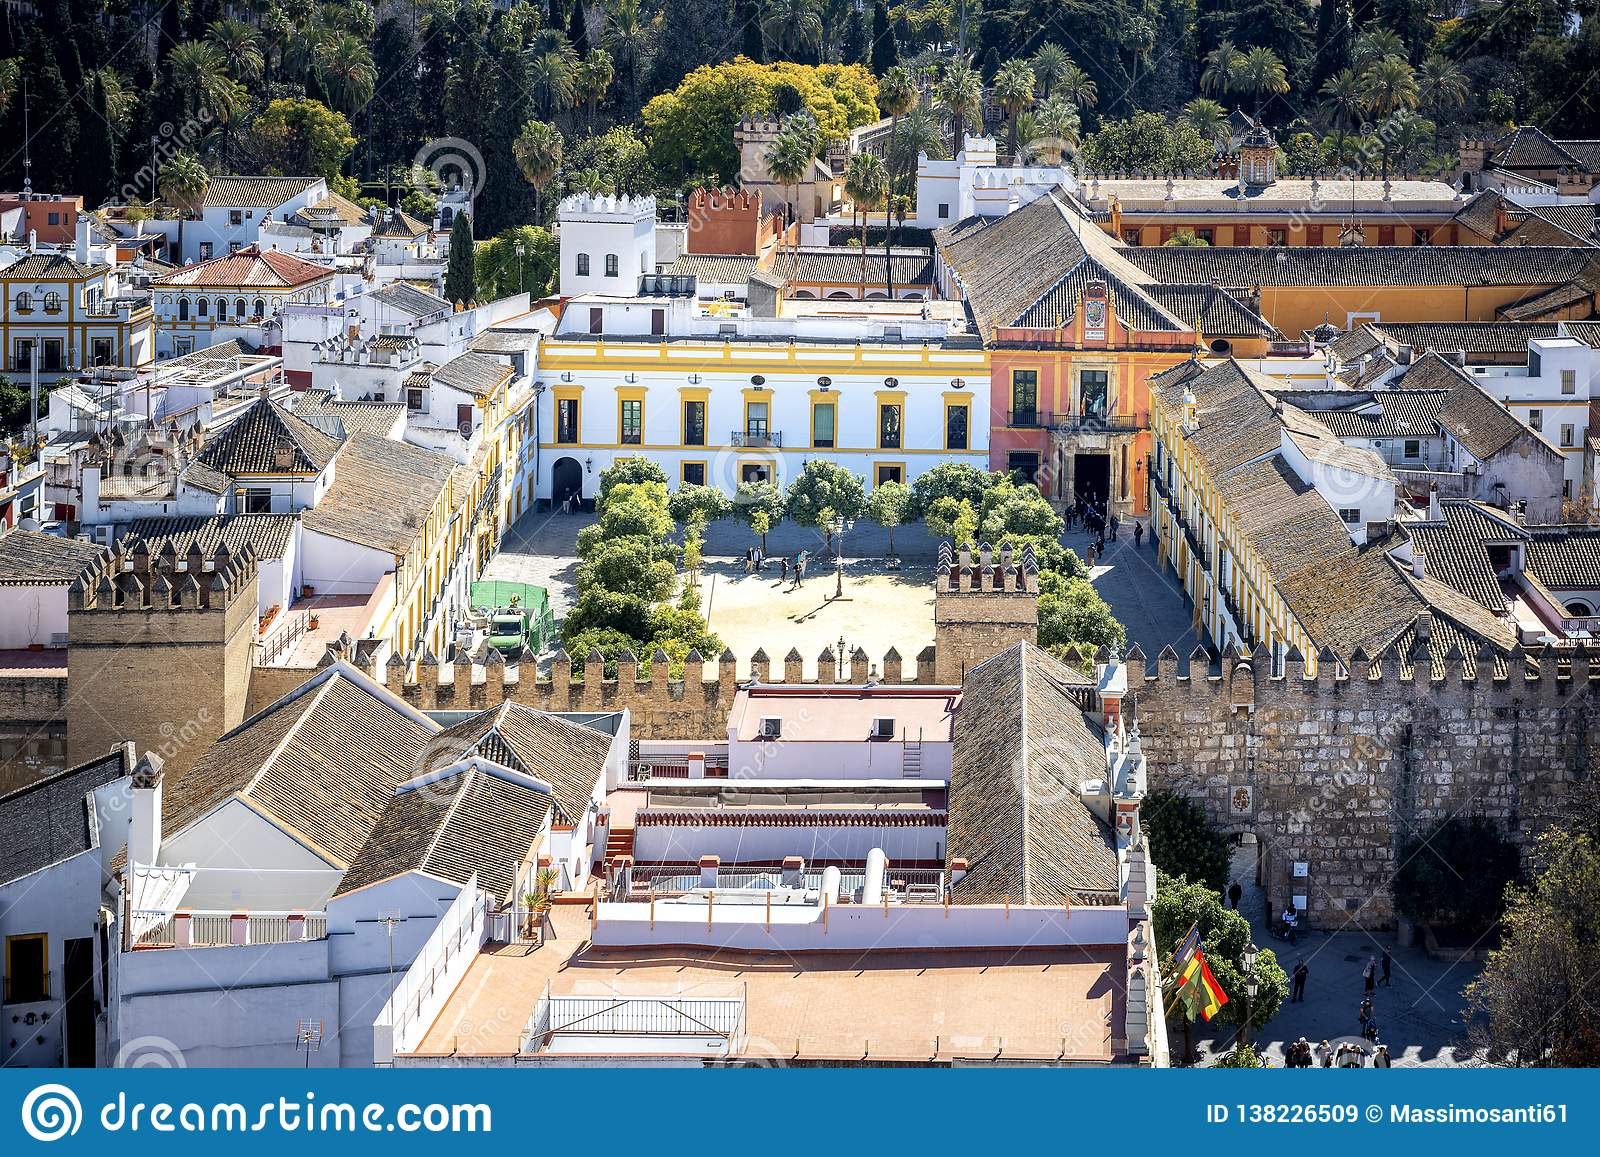 Aerial view of Seville city from the Giralda Cathedral tower, Seville Sevilla, Andalusia, Southern Spain